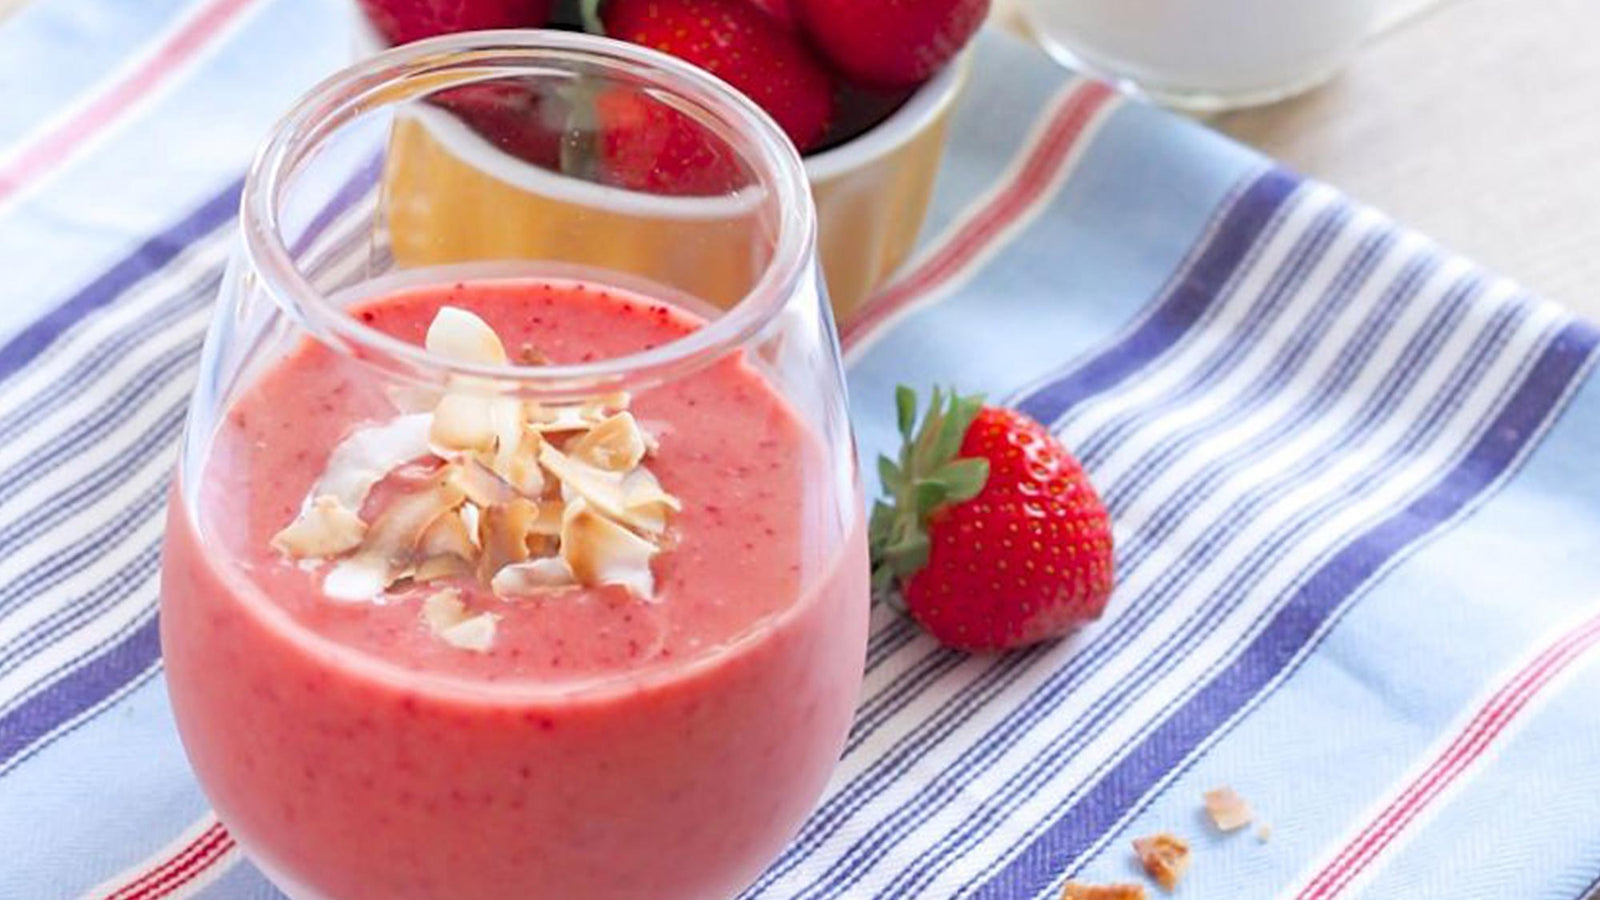 Strawberry Banana Protein Smoothie with Coconut